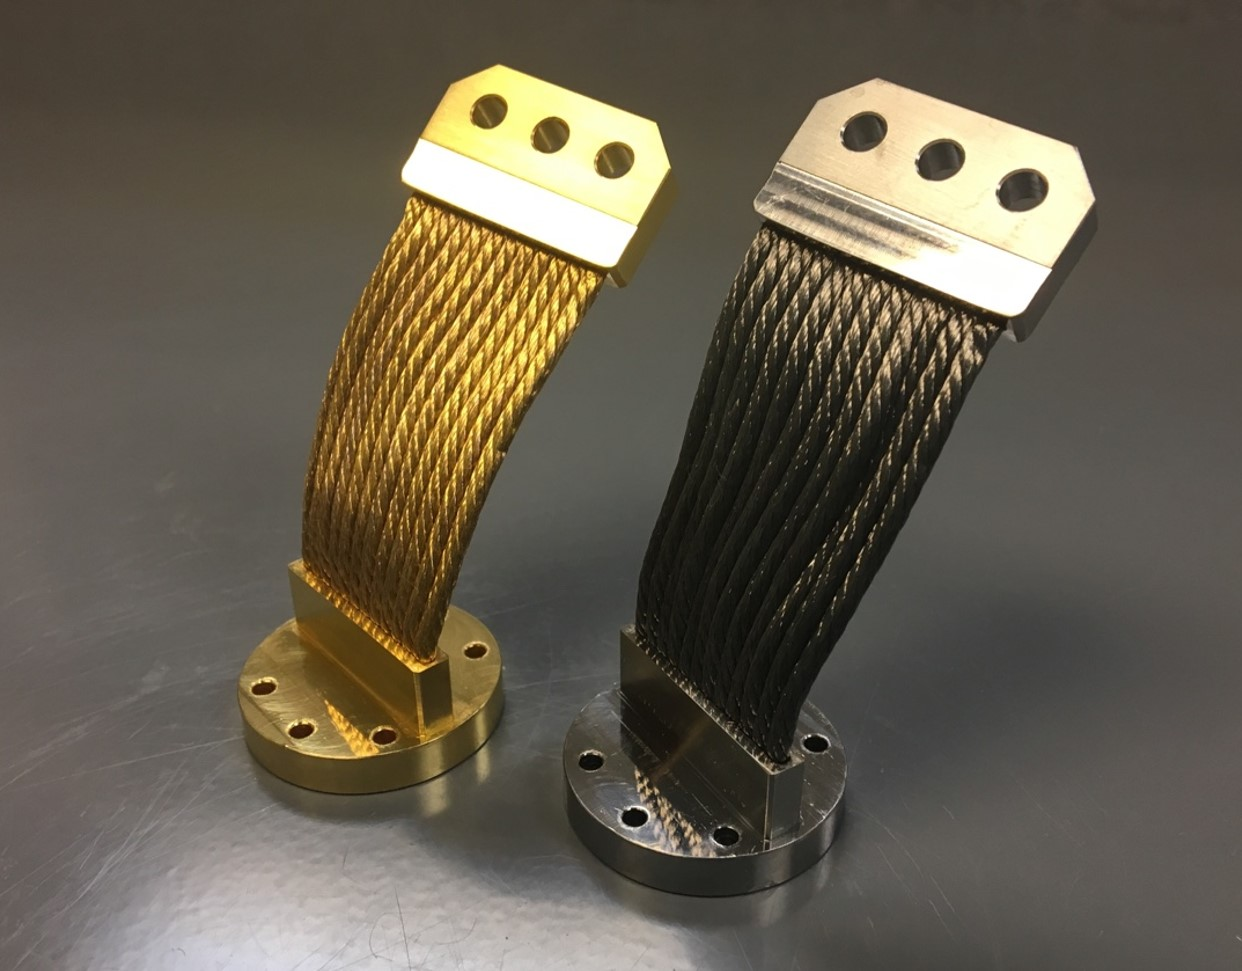 Cryocooler Thermal Straps - Gold and Nickel Plated